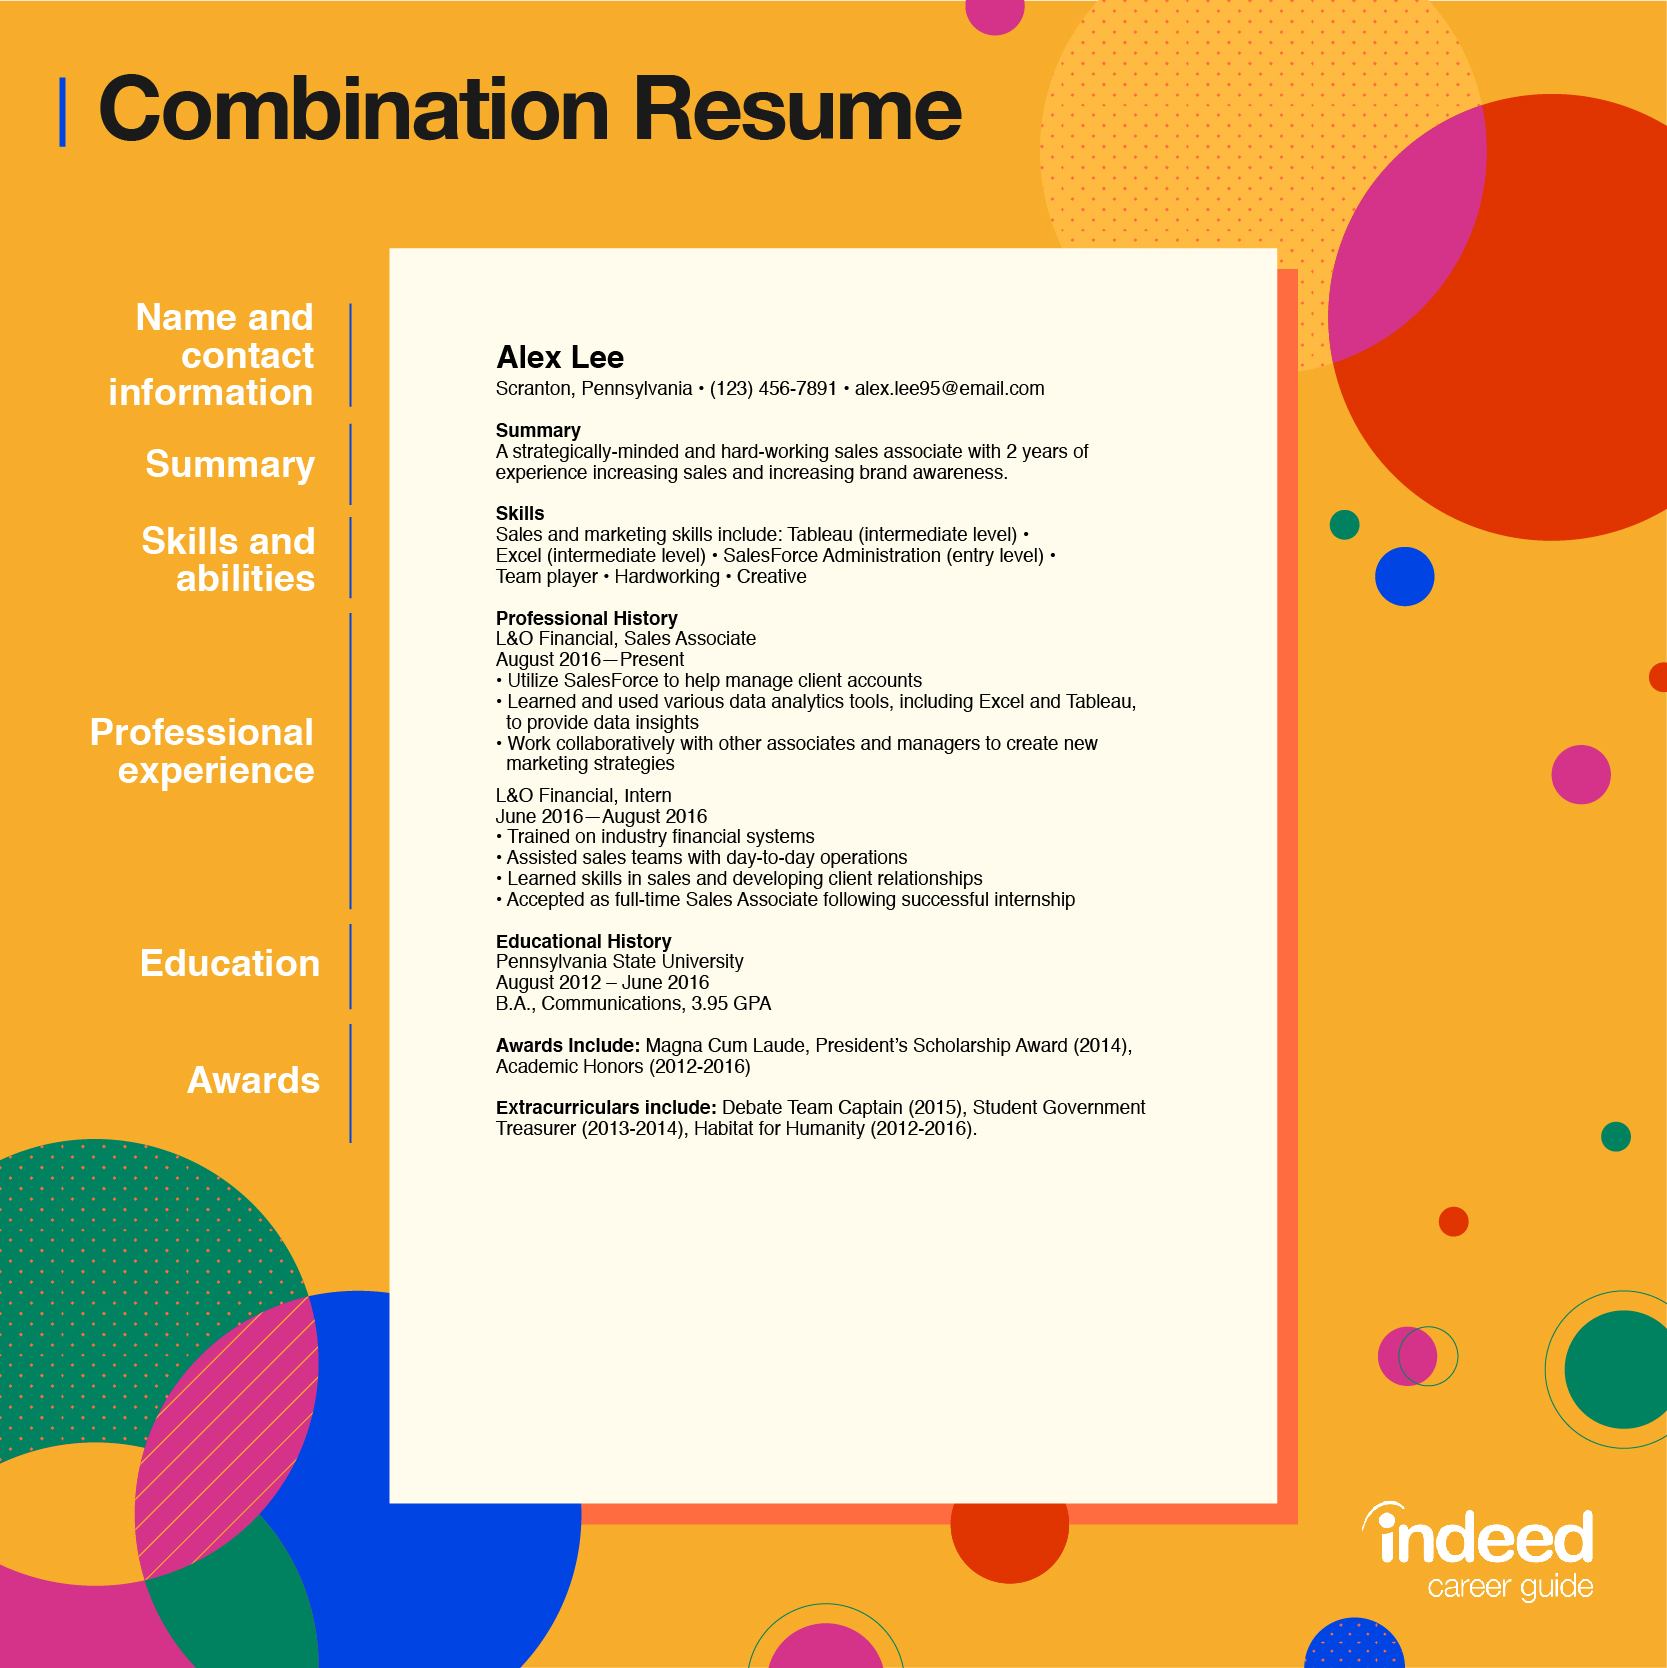 Combination Resume Tips And Examples